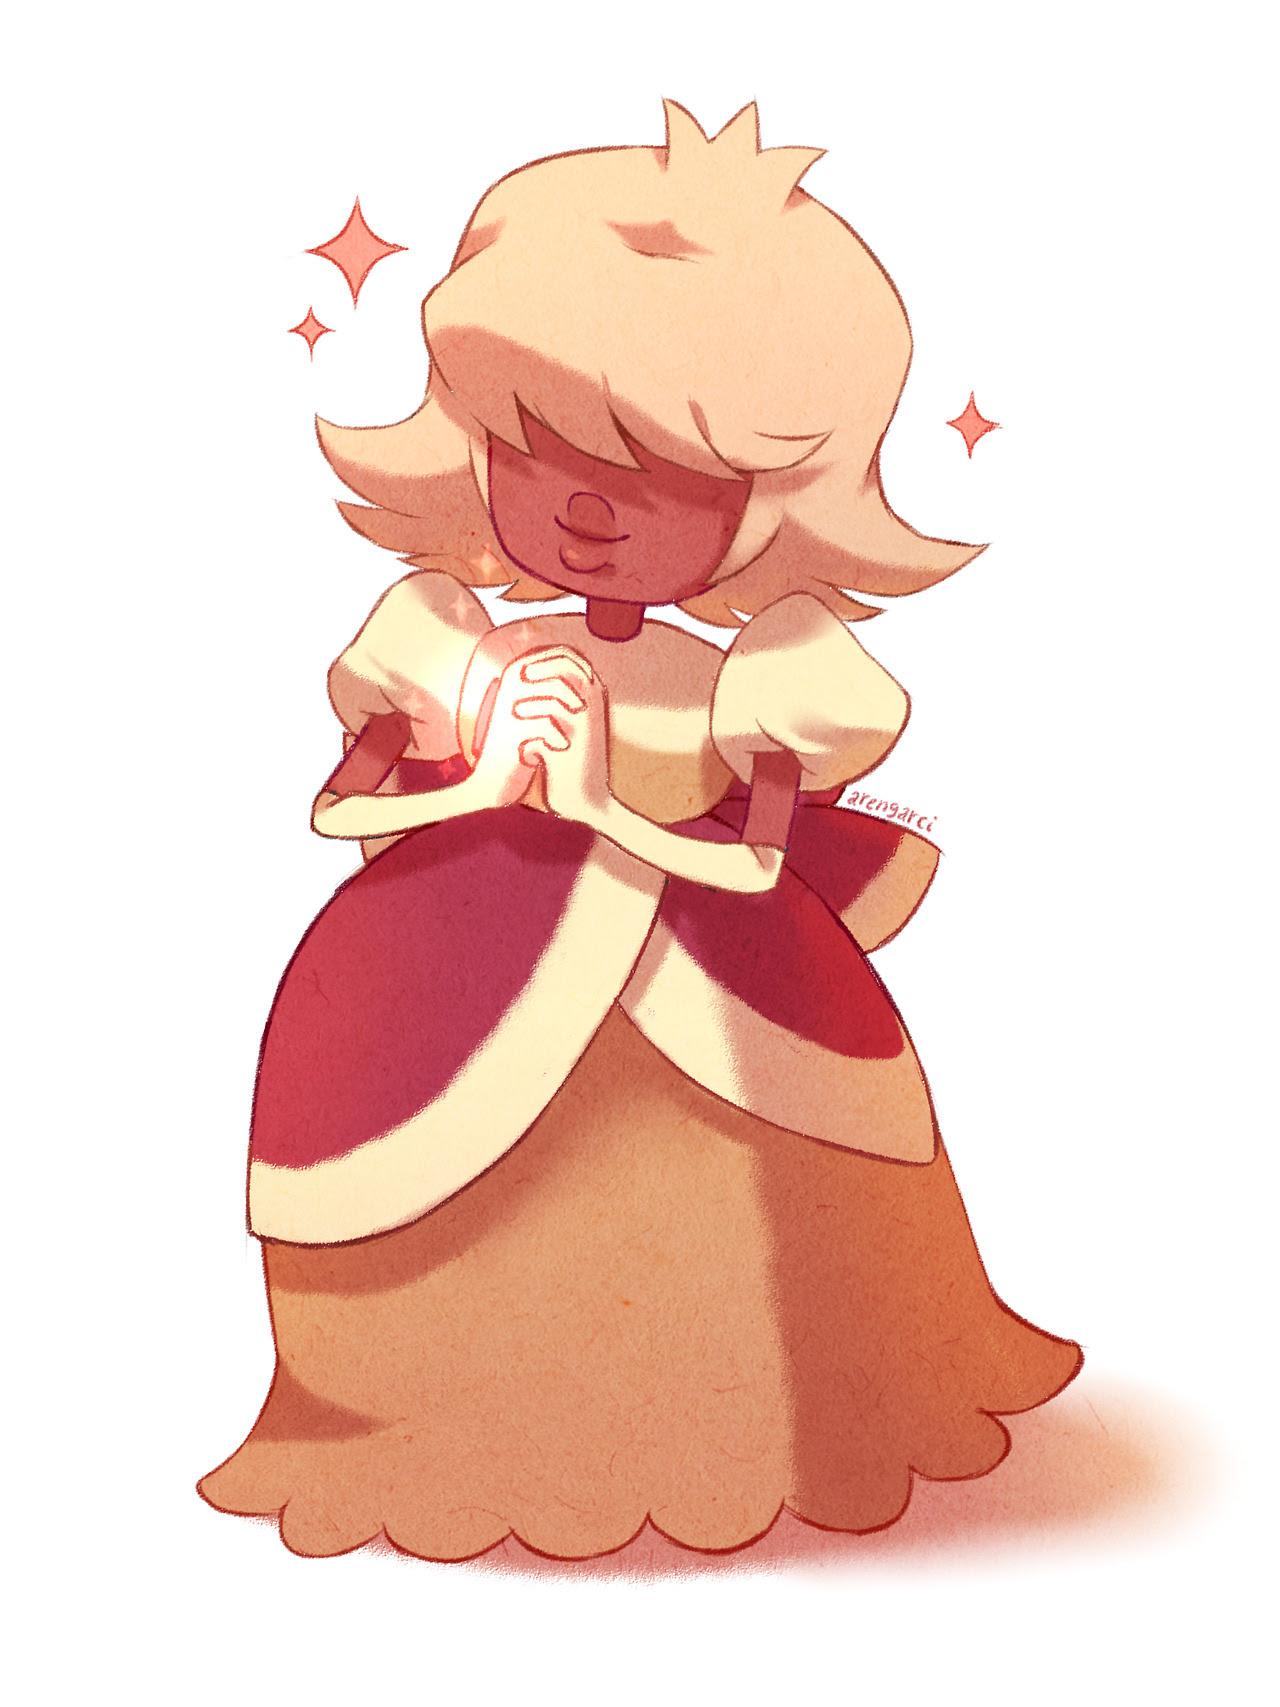 Padparadscha is so sweet, she looks like a pastry